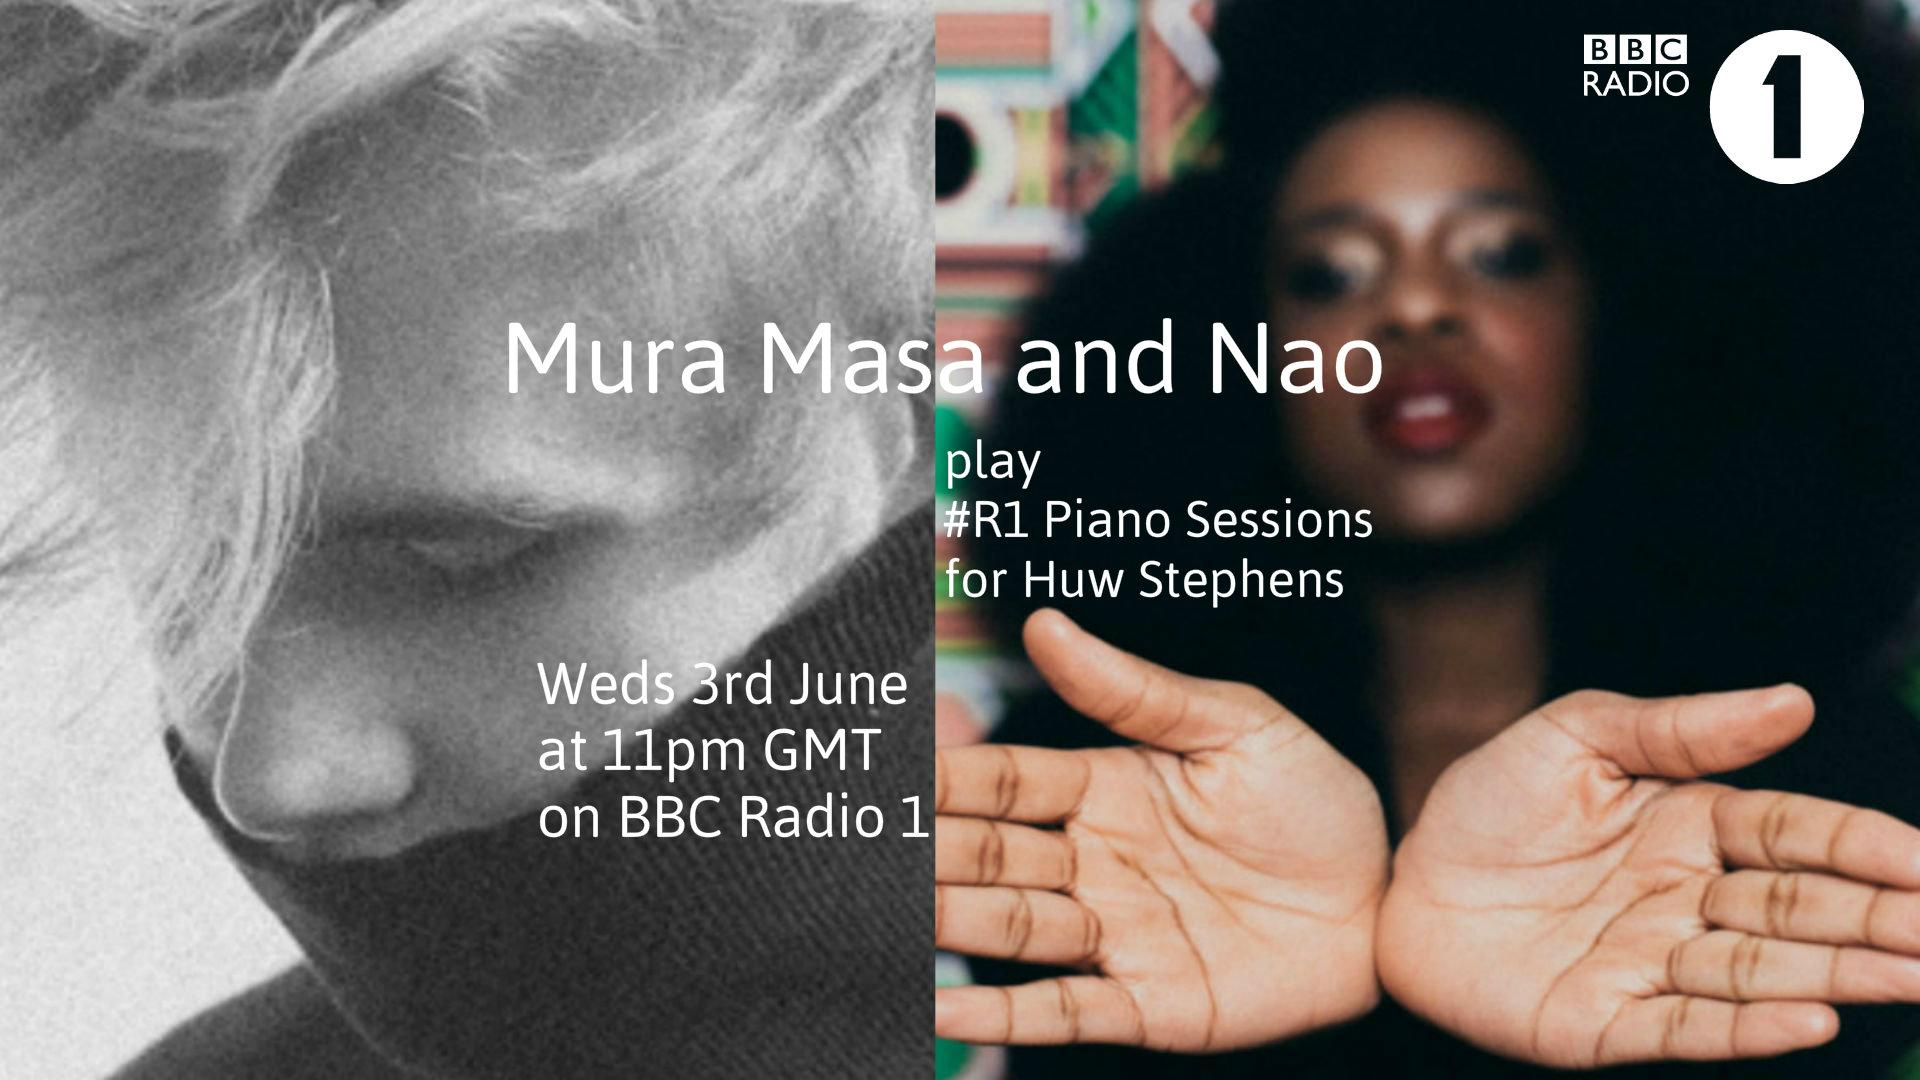 RT @BBCR1: .@huwstephens' next piano session will be with two rising stars @mura_masa_  and @thisnao. Listen in next Wednesday! http://t.co…